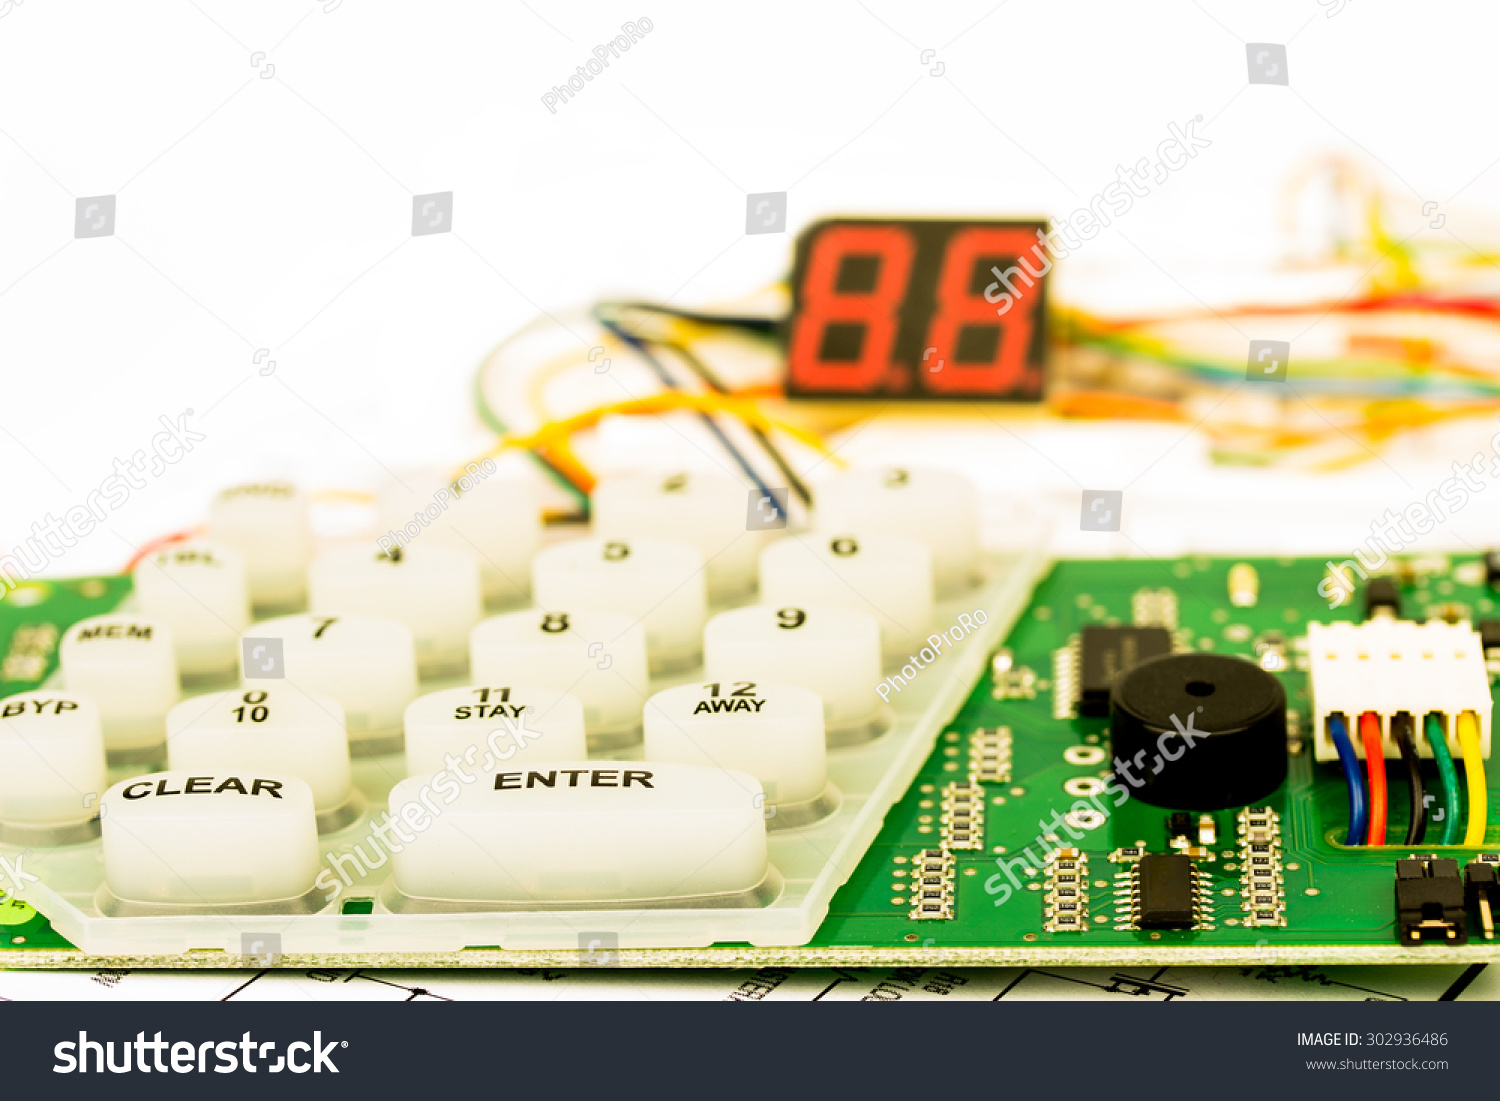 Royalty Free Workbench For Alarm And Interphone 302936486 Stock Repair Electronic Circuit Board Photography Image Electronics Diagram Multimeter Components